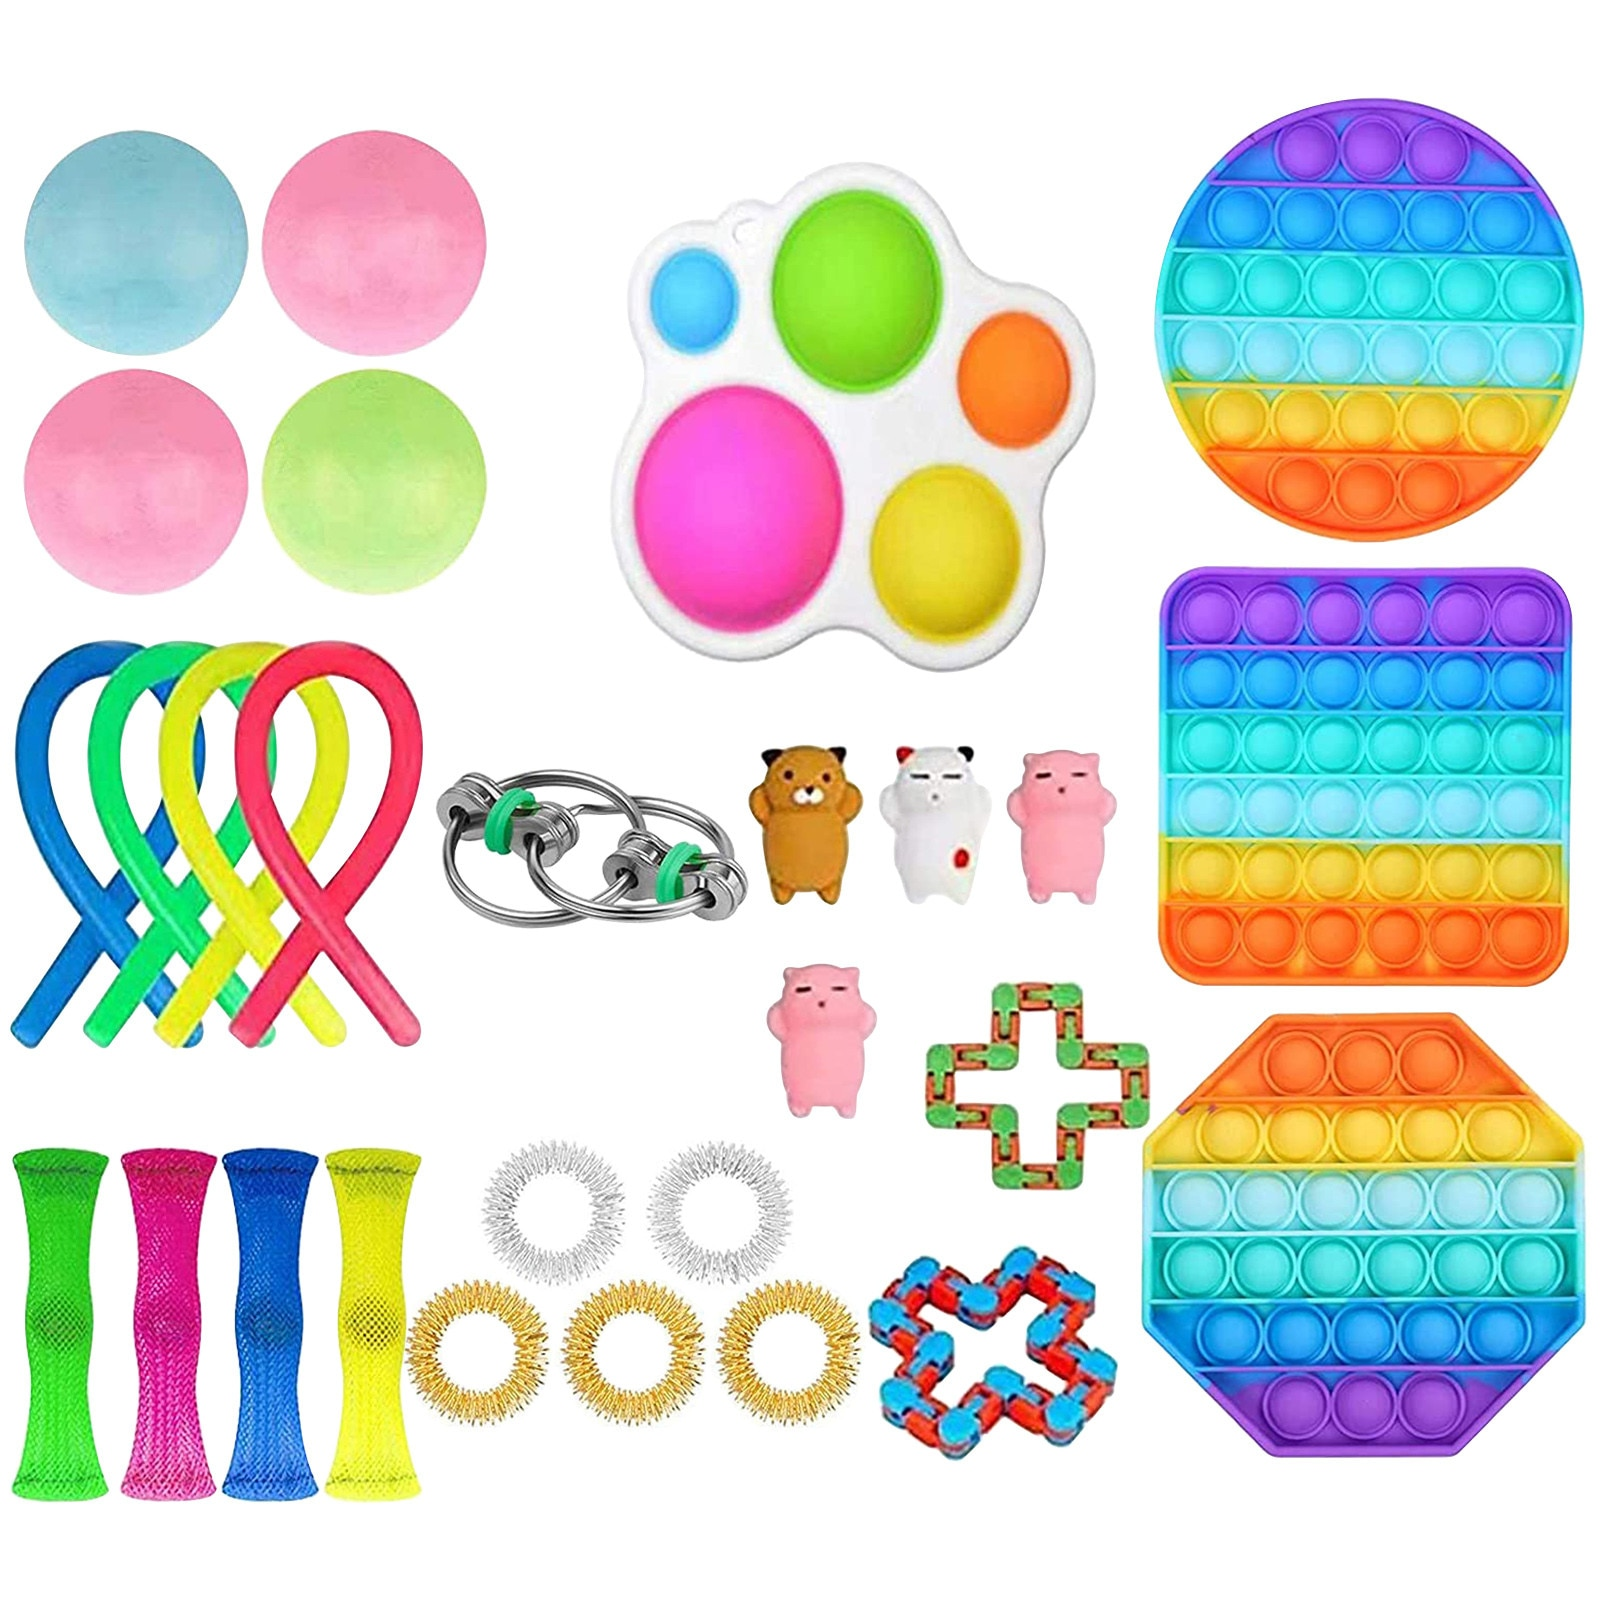 Push Pops Bubble Sensory Toy Autism Special Needs Stress Reliever And Increase Focus Soft Squeeze Kids Adults Toy Dropshipp R5 enlarge